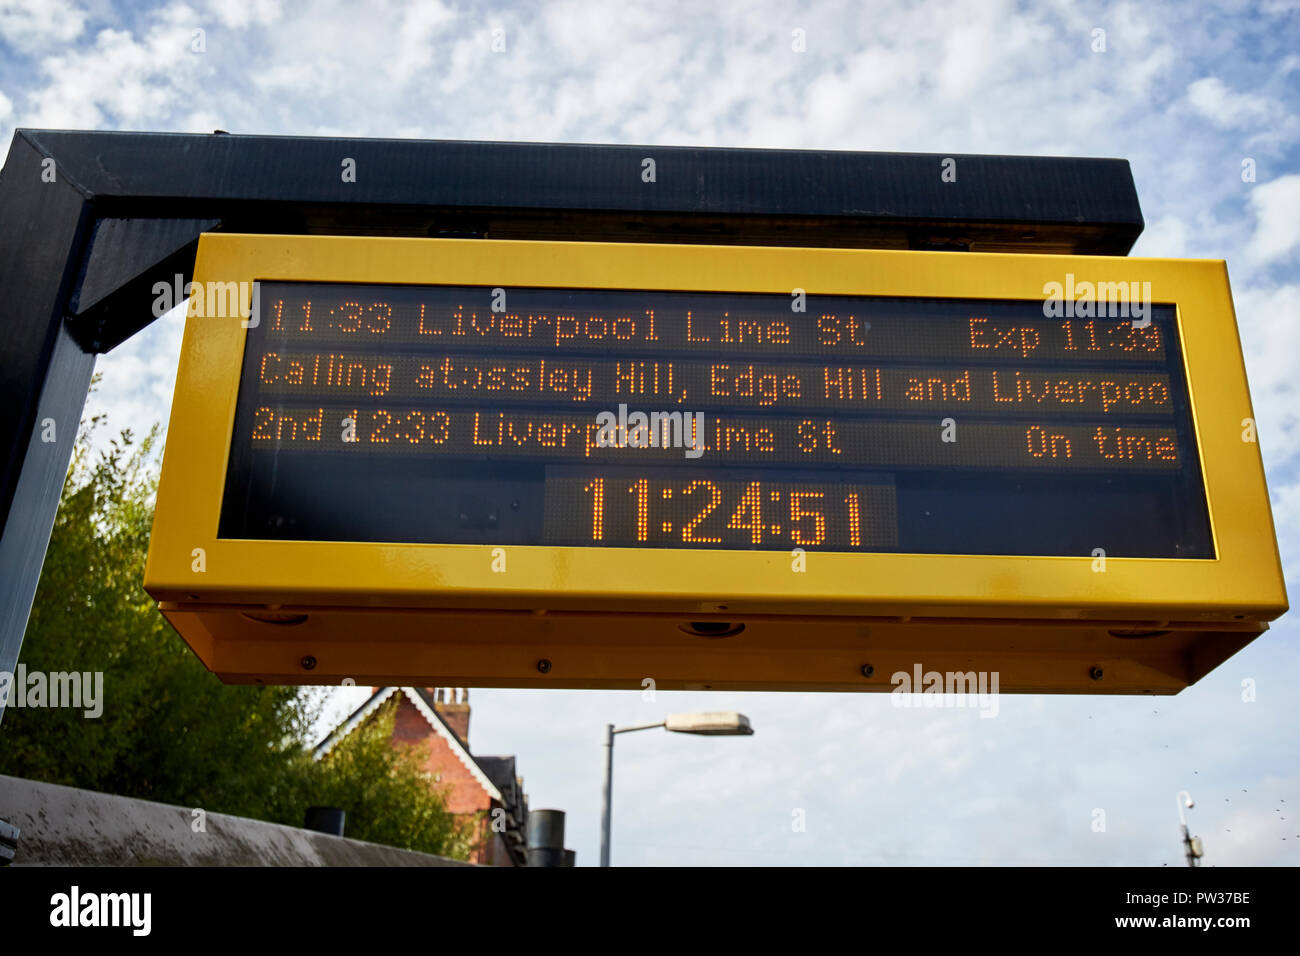 train information electronic board at hunts cross train railway station Liverpool Merseyside England UK - Stock Image